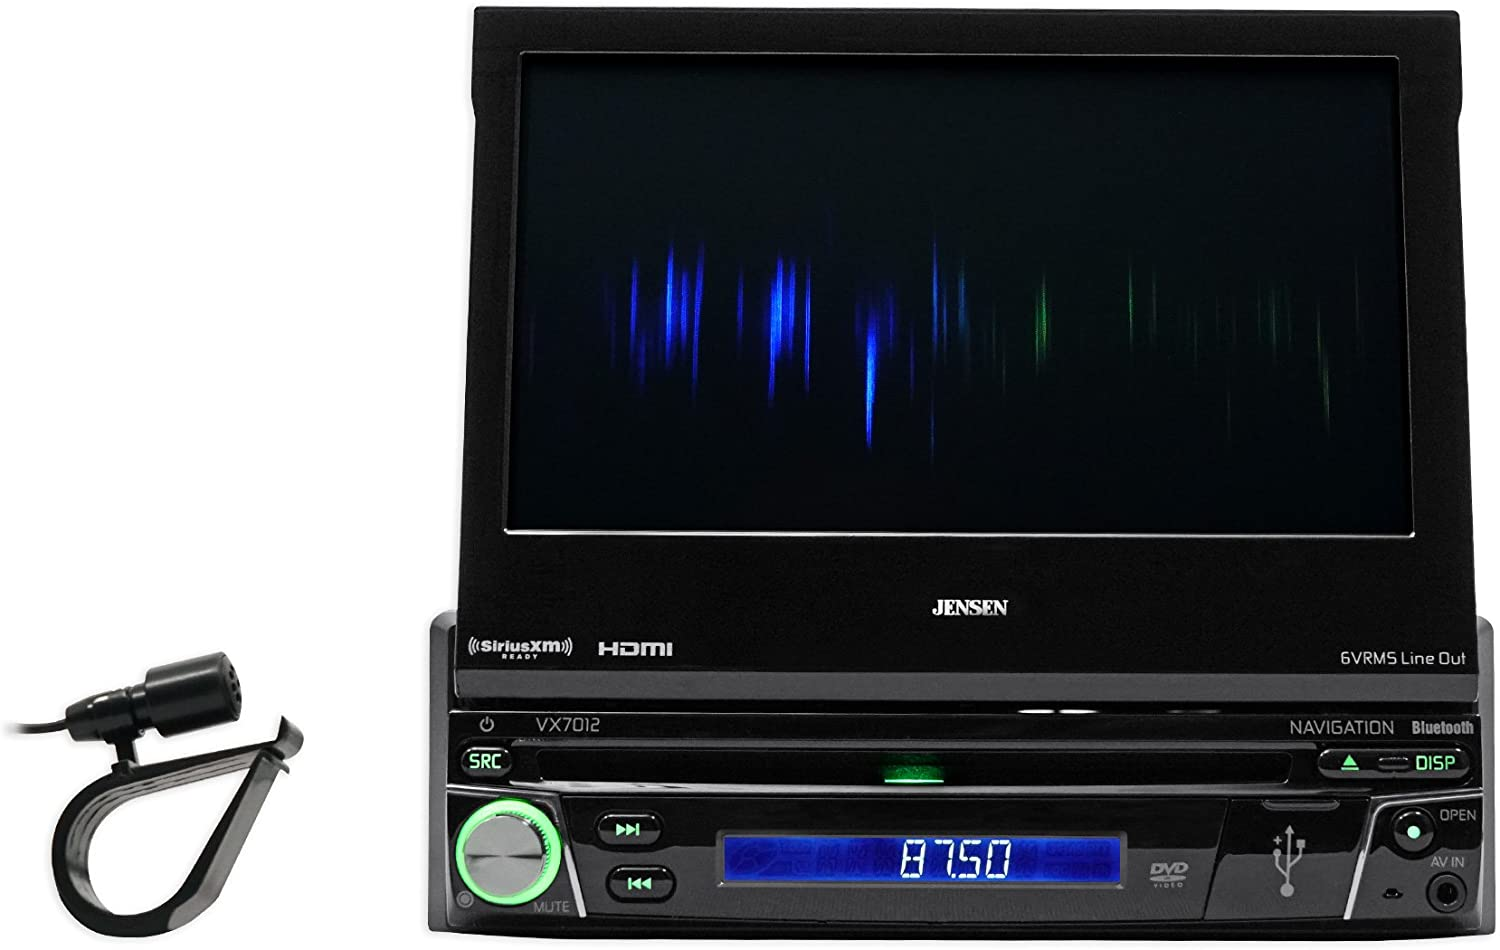 Jensen VX7012 7 inch LCD Multimedia Retractable Touch Screen Single Din Car Stereo with Built-in Bluetooth CD//DVD Player /& USB//microSD Ports